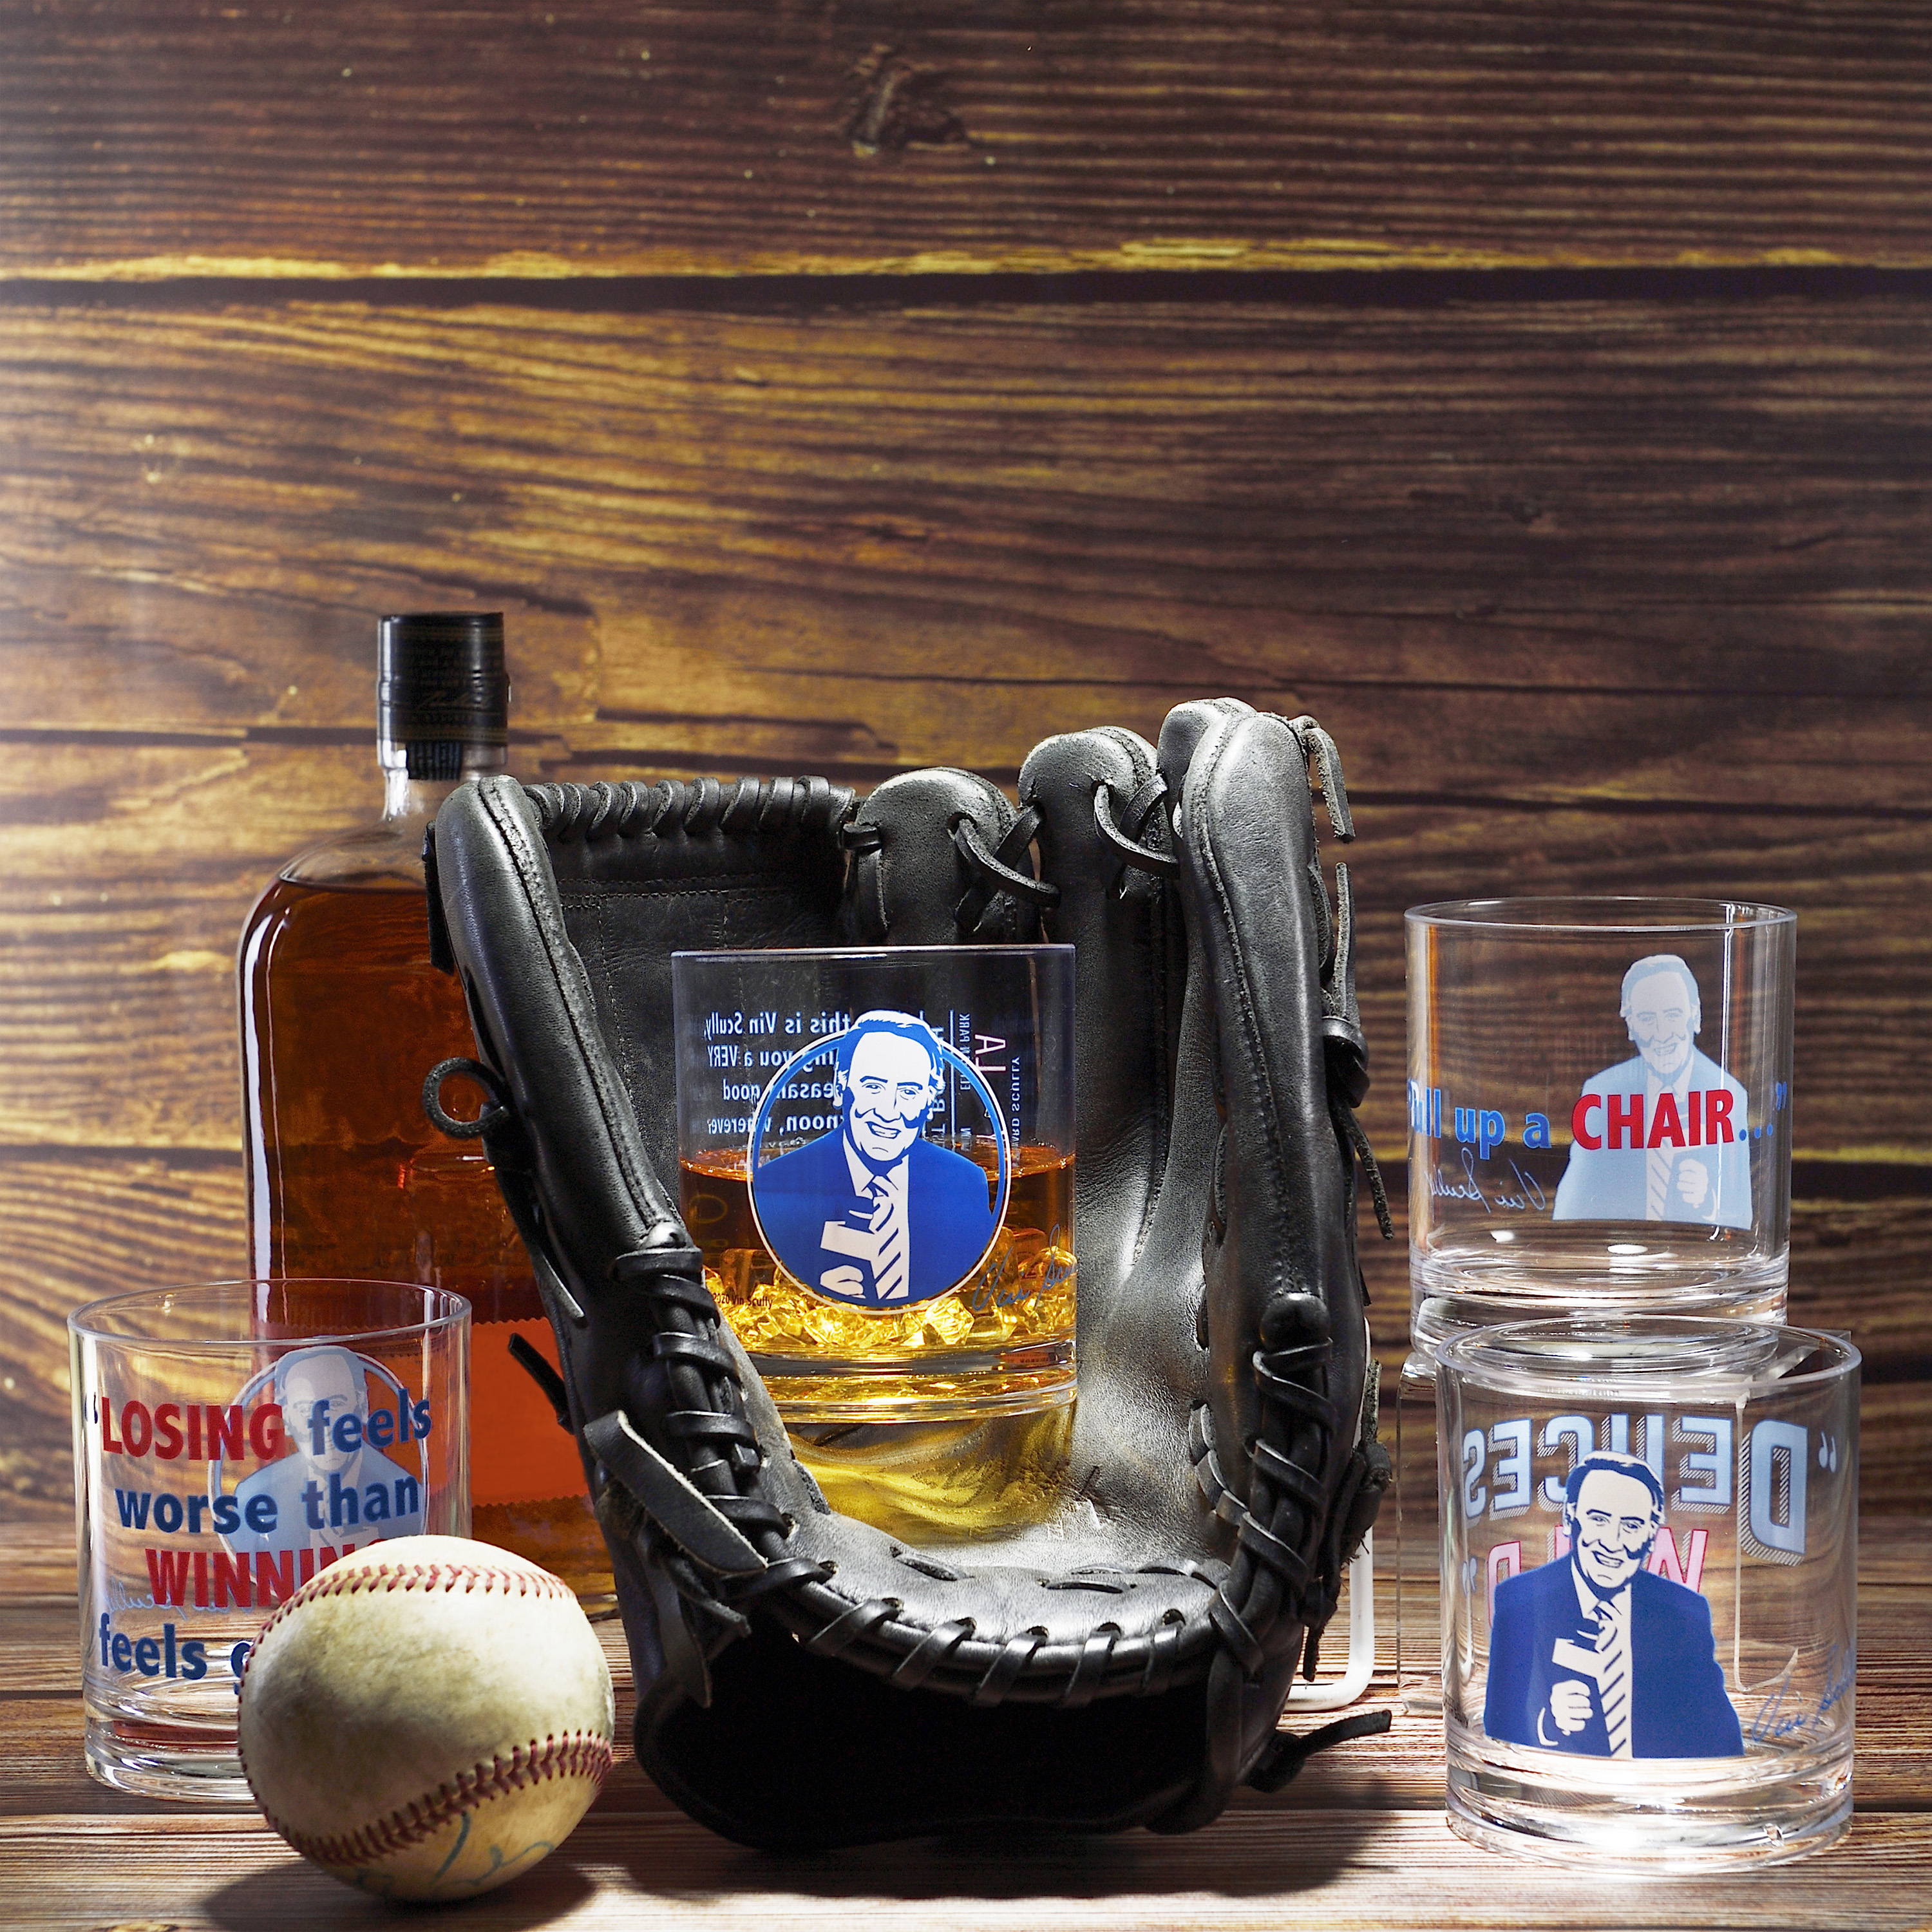 Zak Hydration 14 ounce Plastic Double Old-fashion Glass, Vin Scully, 4-piece set slideshow image 4